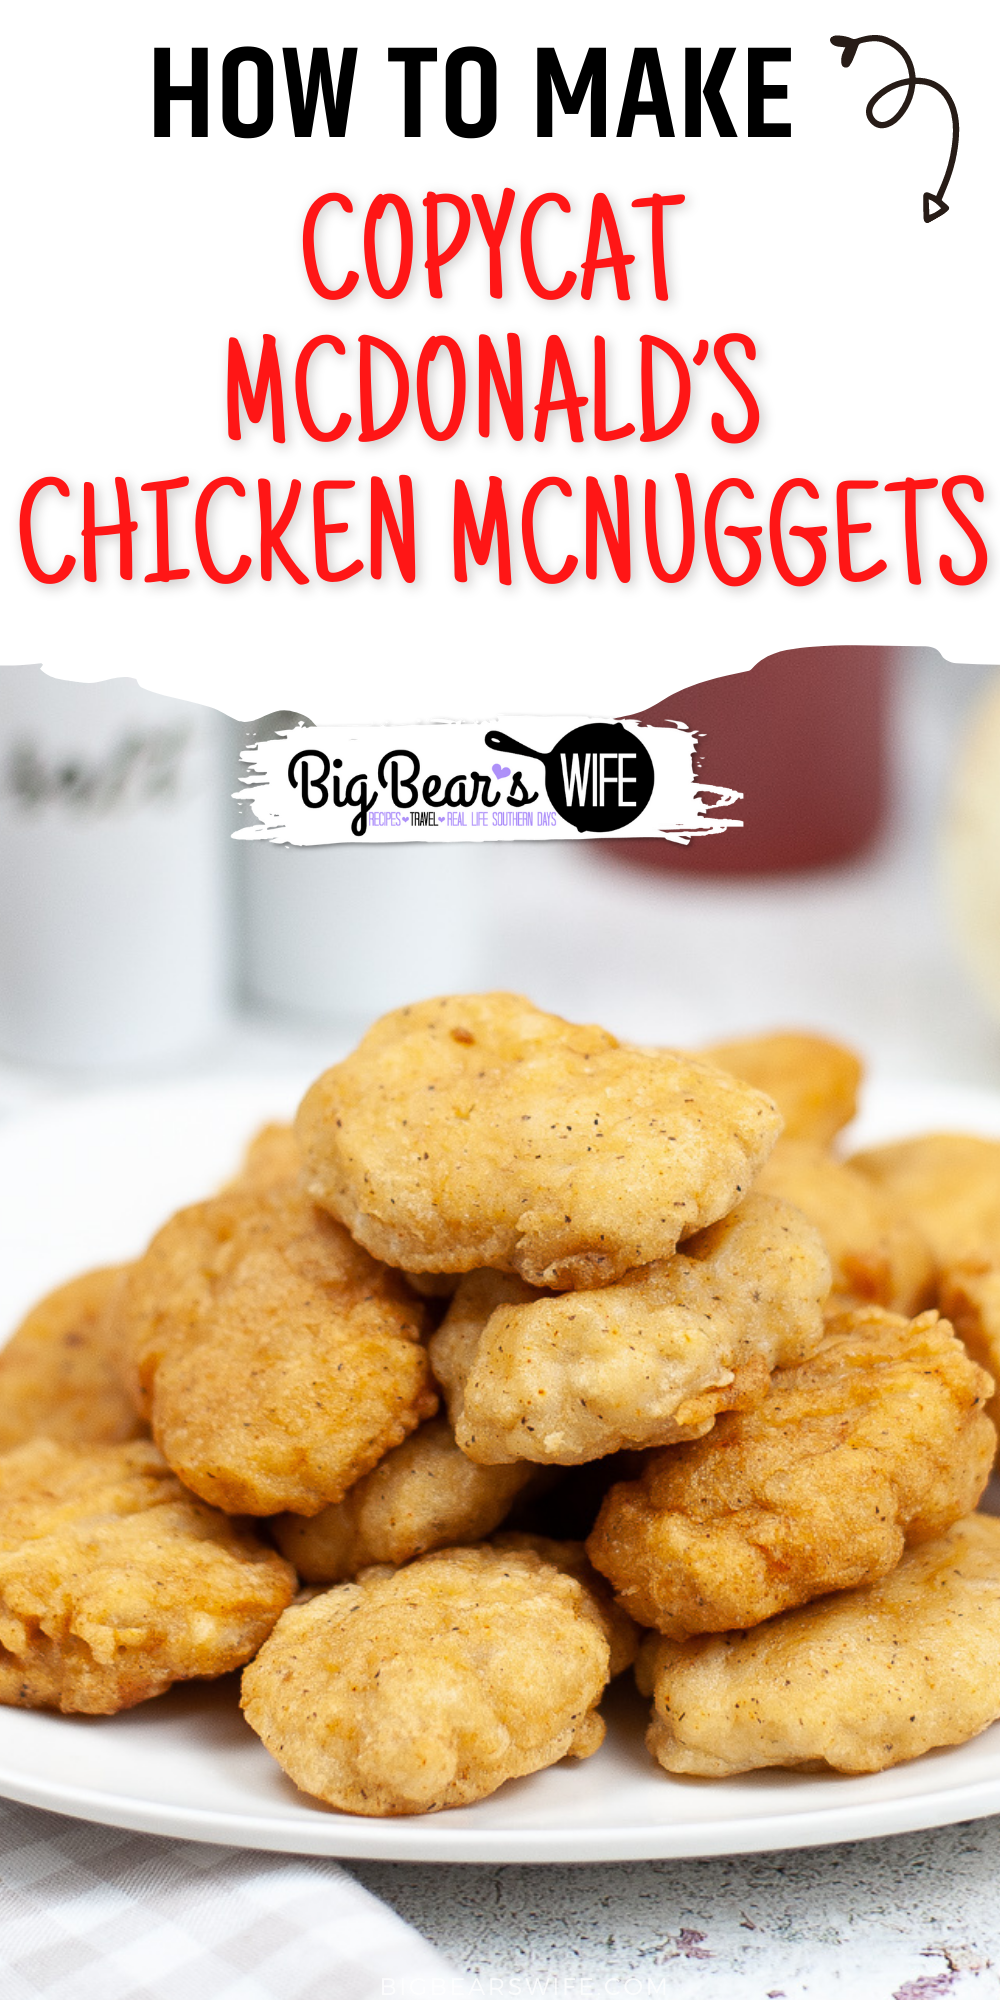 If your kids love McDonald's Chicken McNuggets but you want to make more meals at home, you're going to love this recipe for Copycat McDonald's Chicken McNuggets! via @bigbearswife